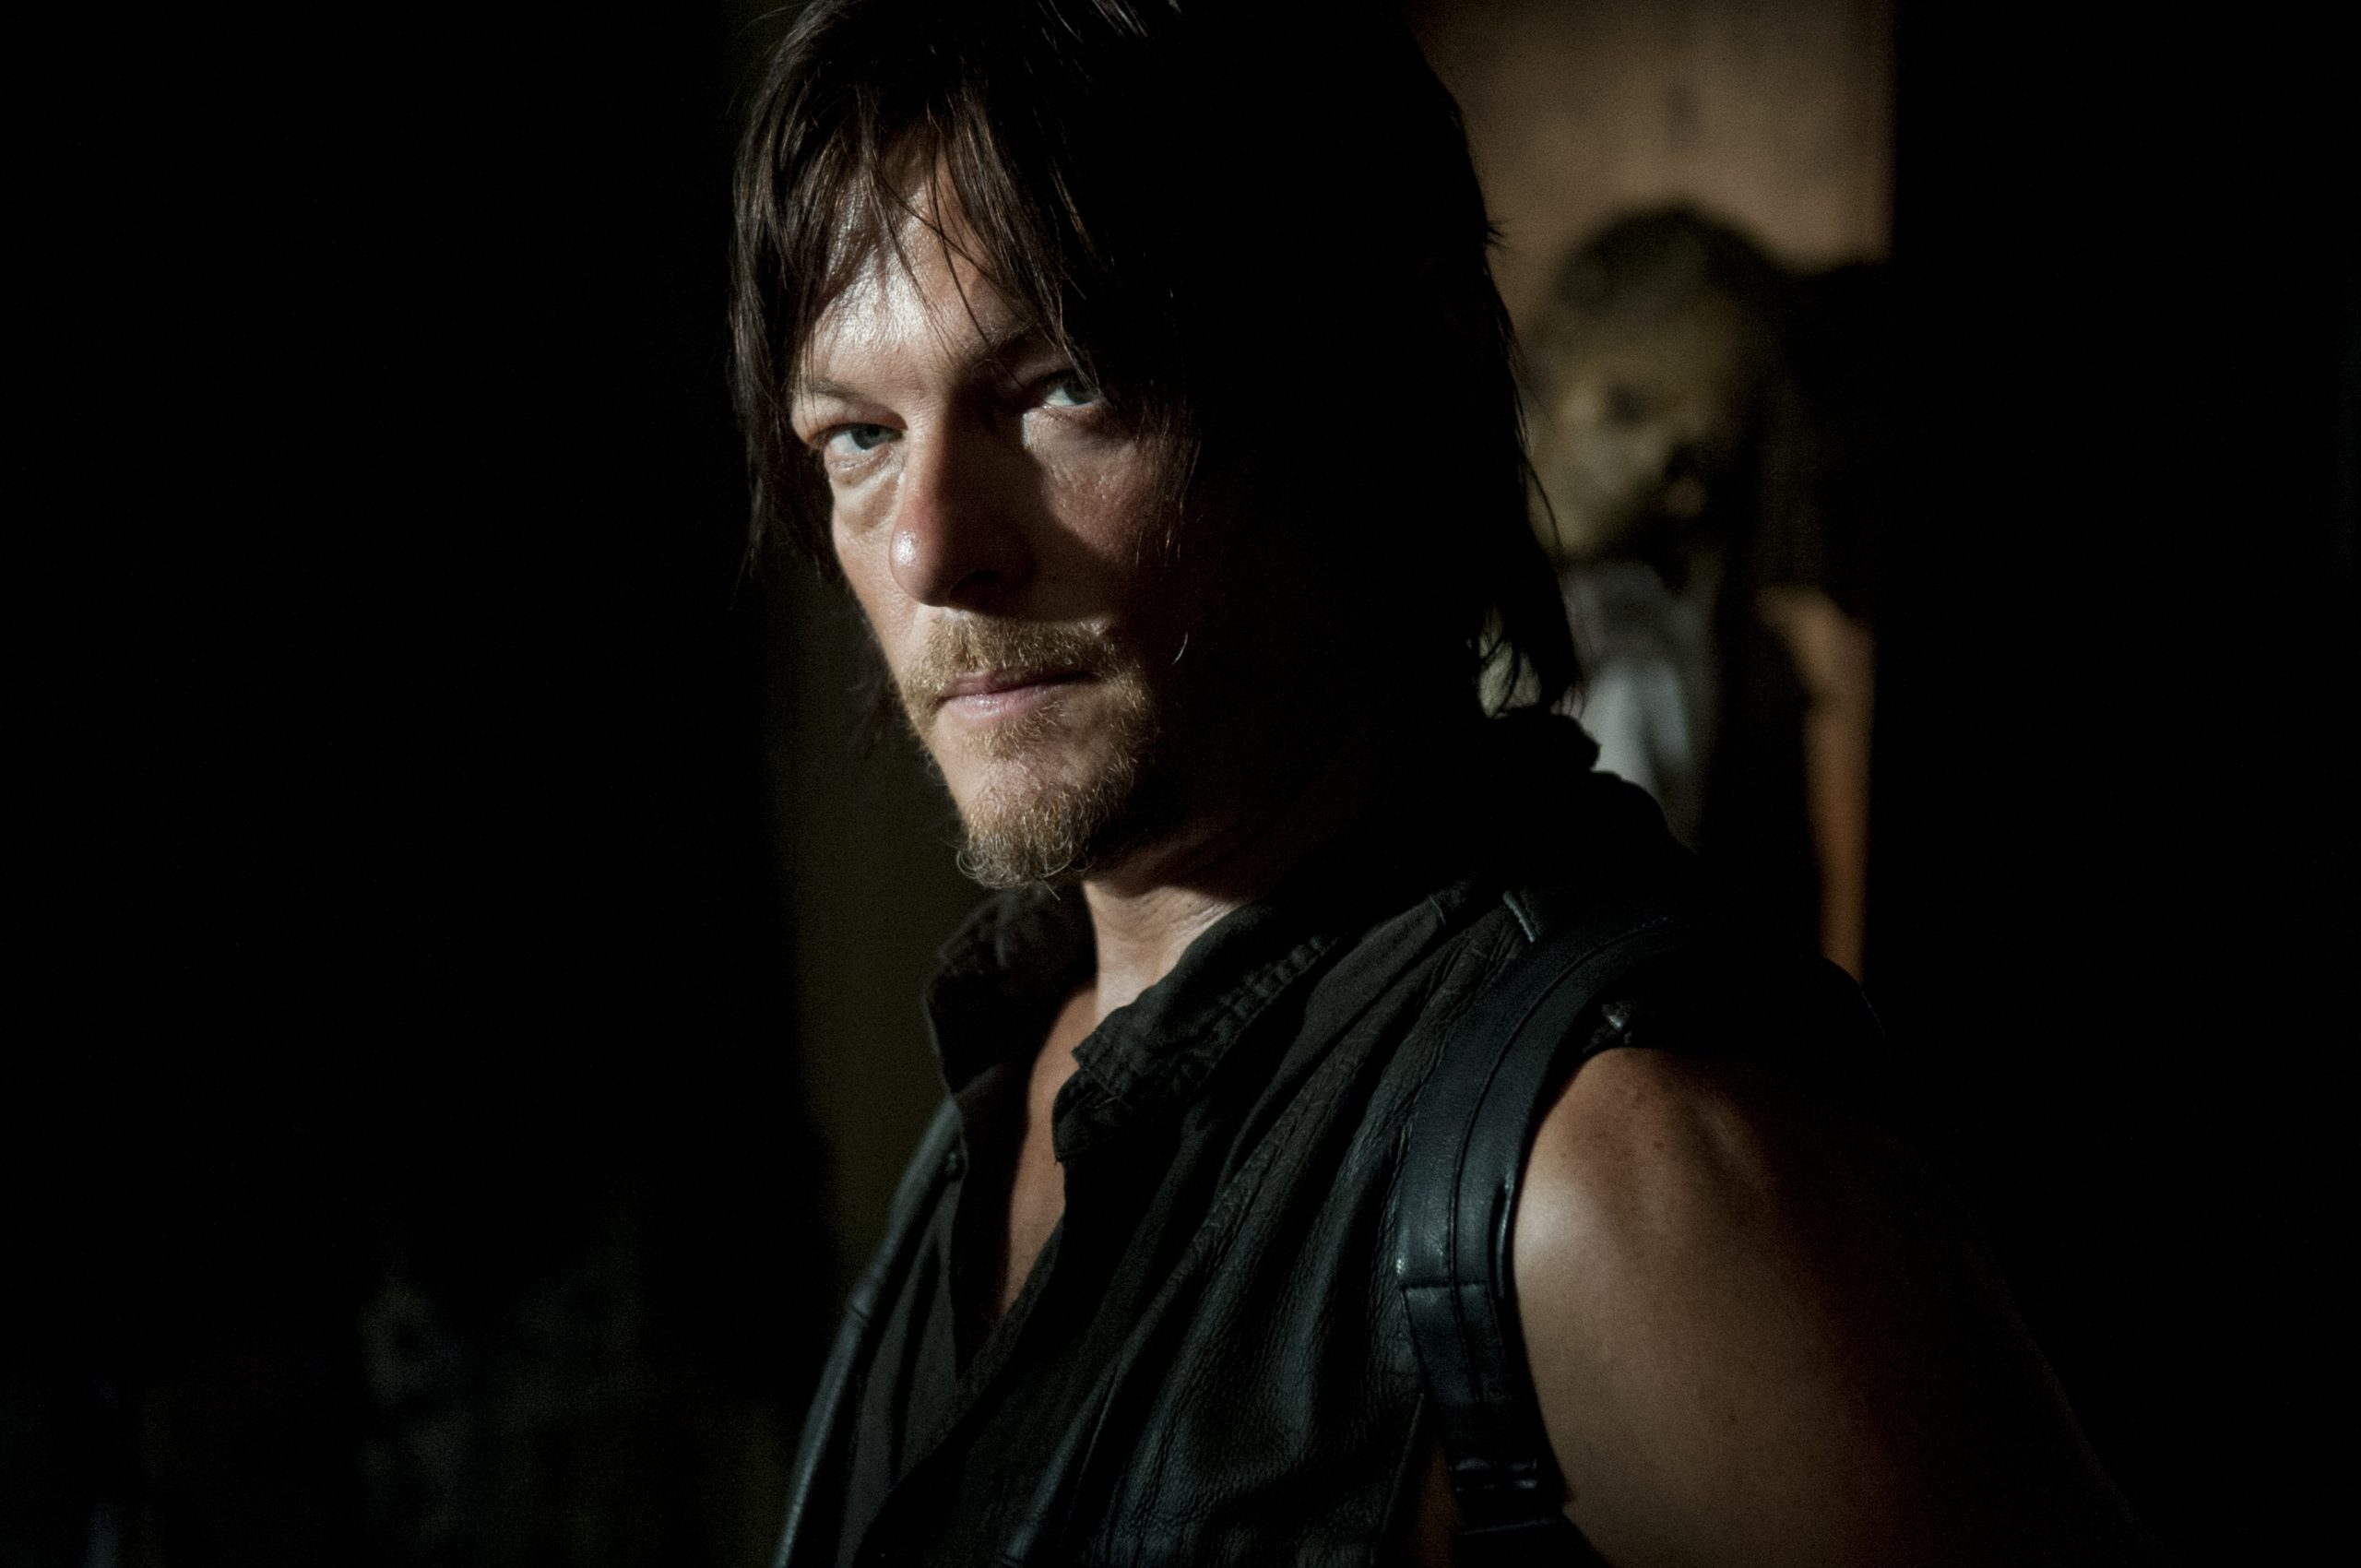 Daryl becomes the leader of The Walking Dead